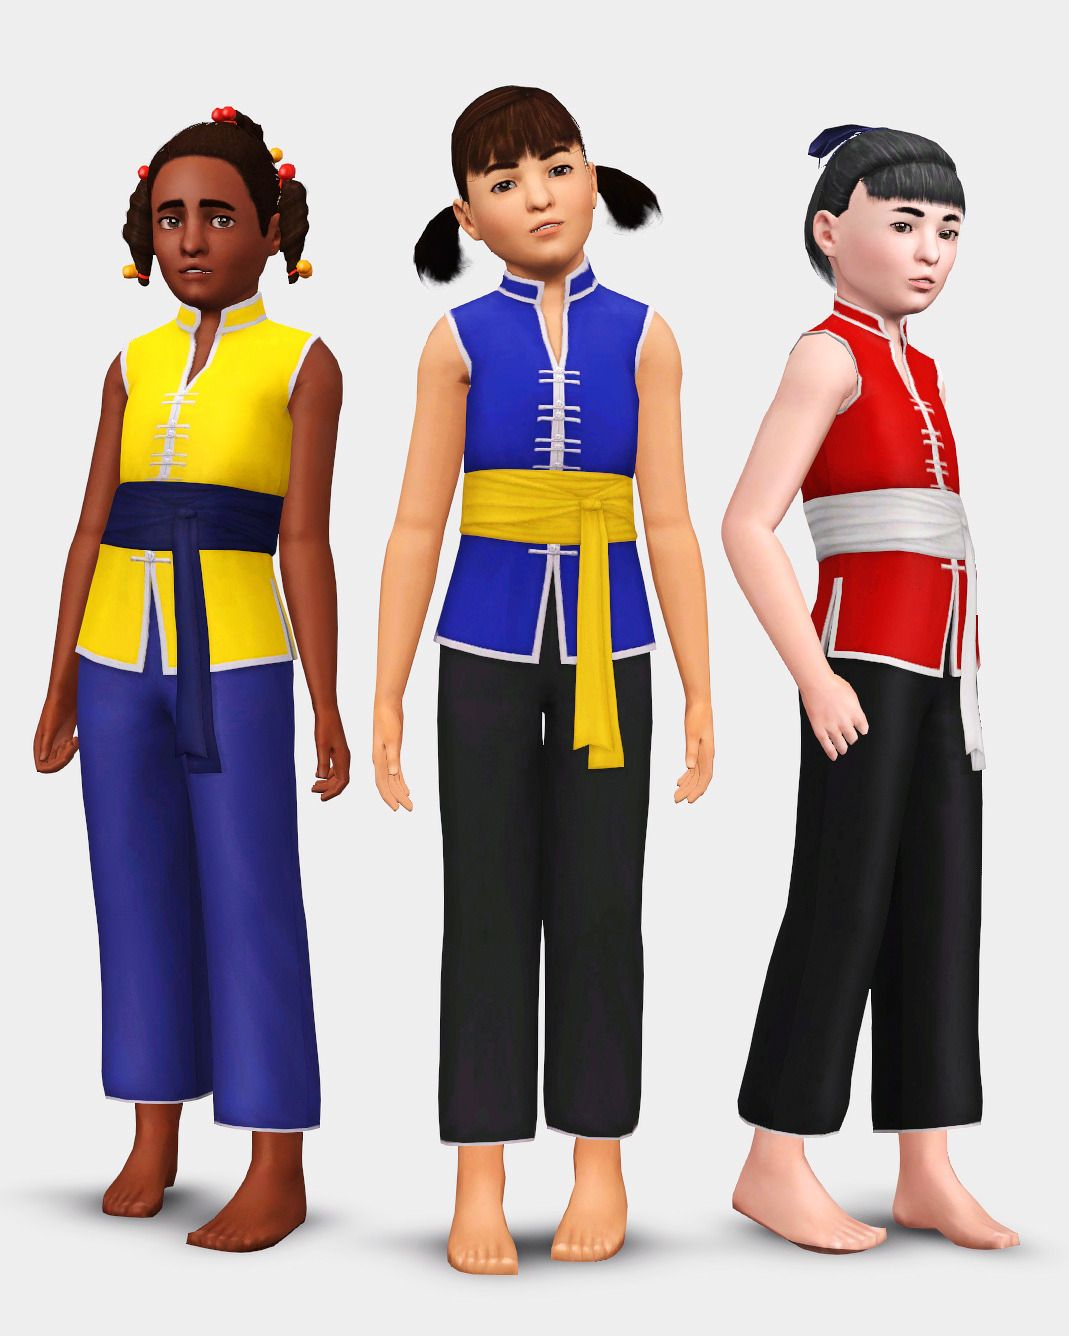 world adventures martial arts outfits for children this is a request which came in on the 15th